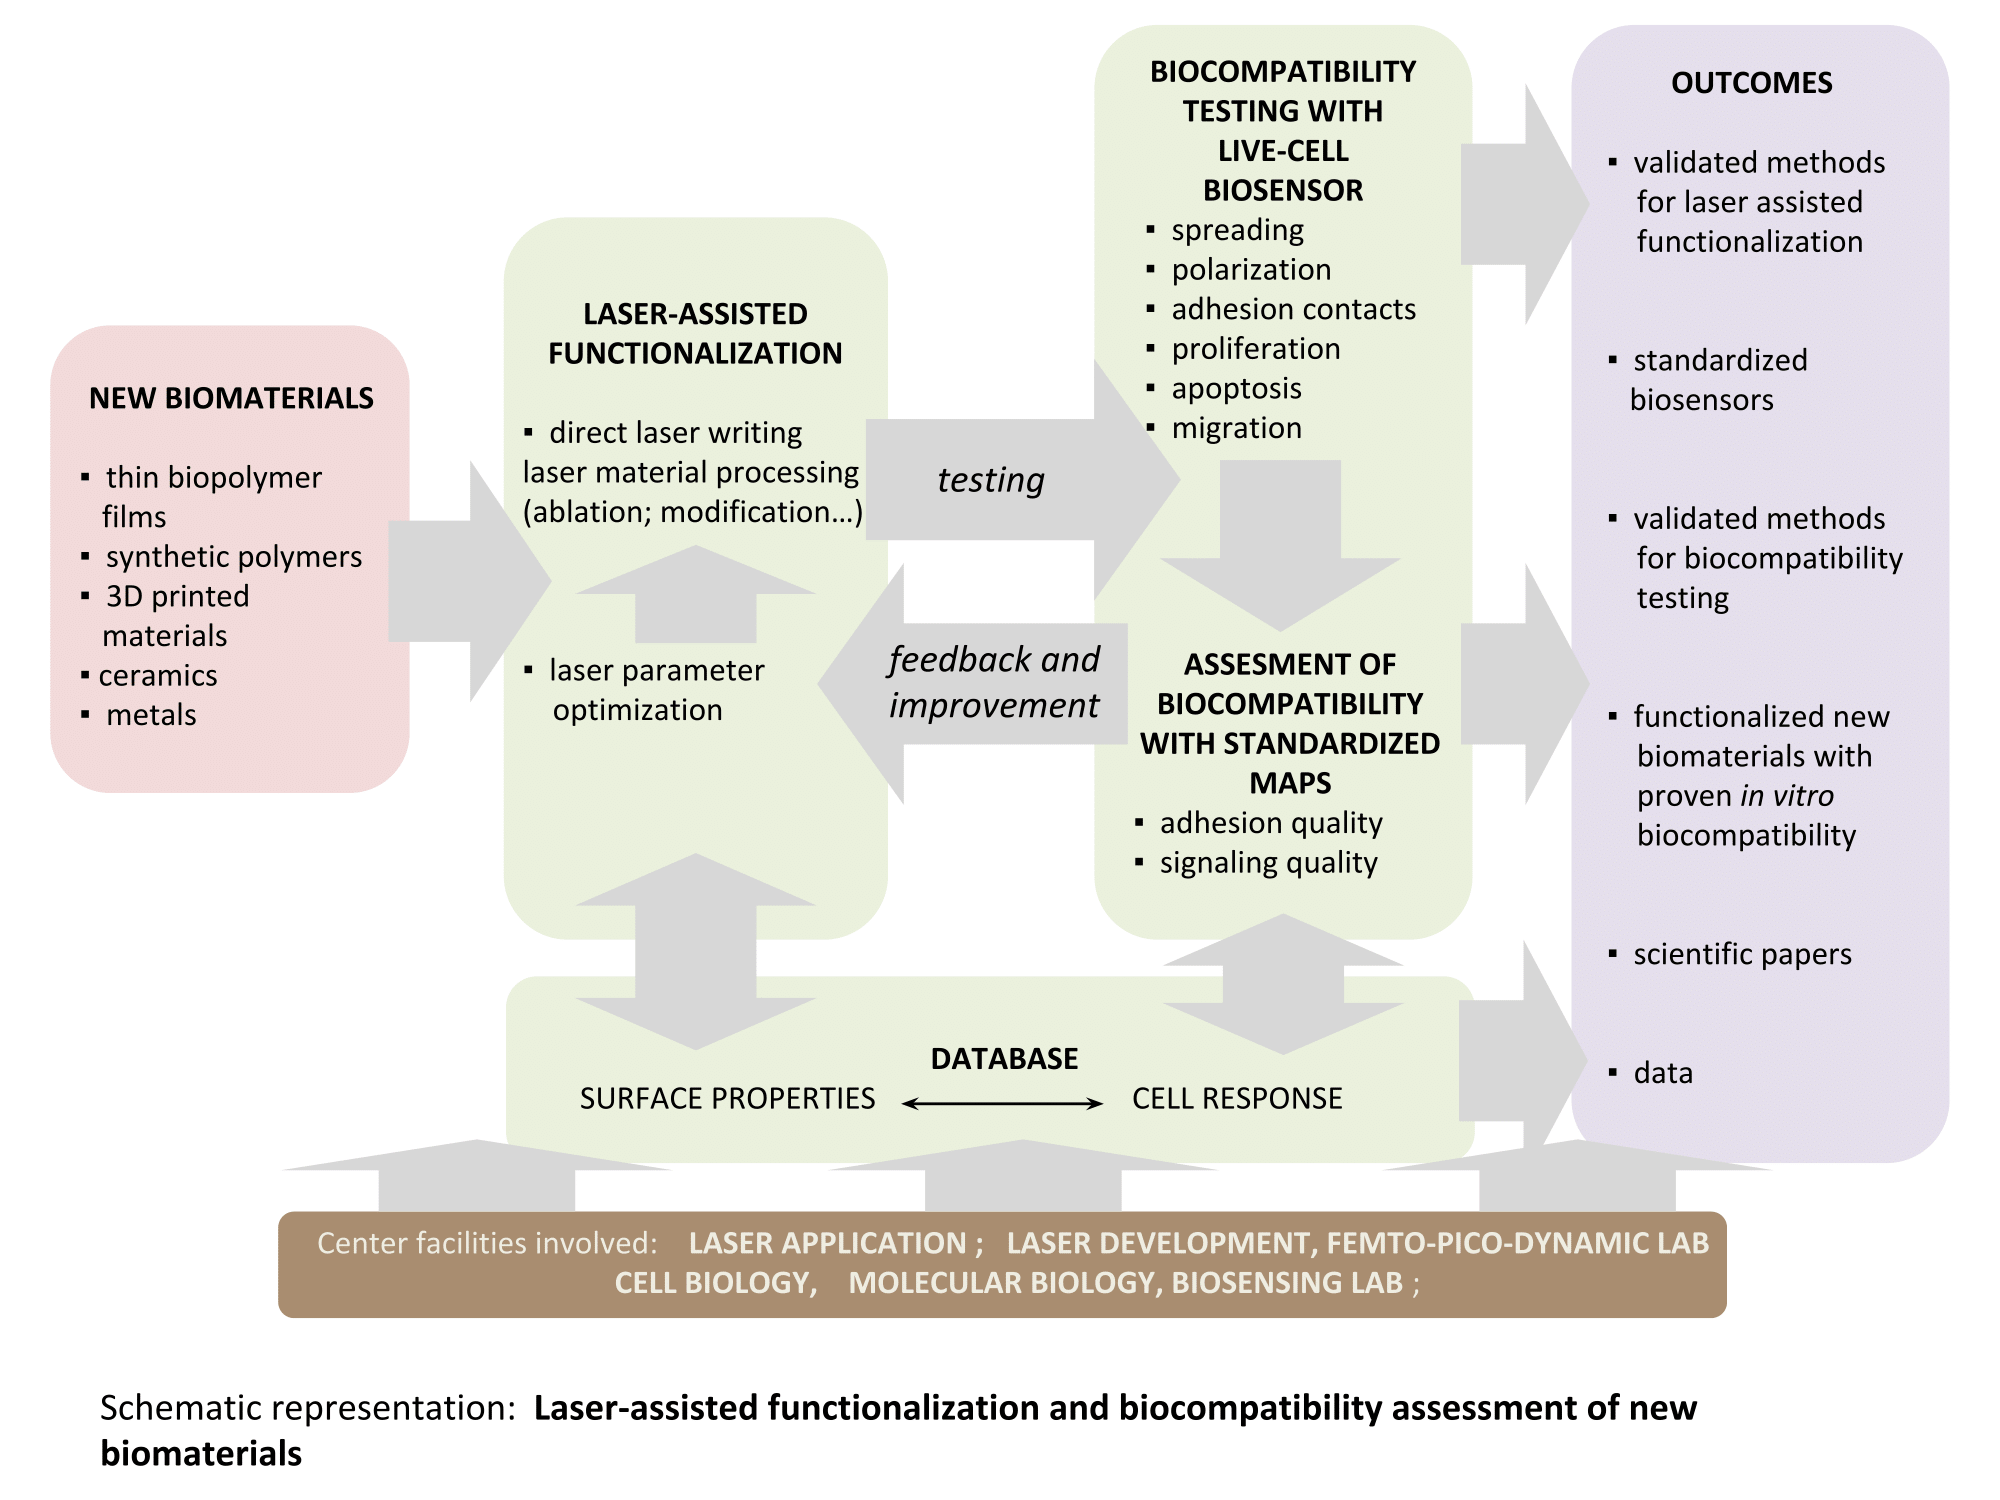 Graphical abstract of Laser-Assisted Functionalization and Biocompatibility Assessment of New Biomaterials.